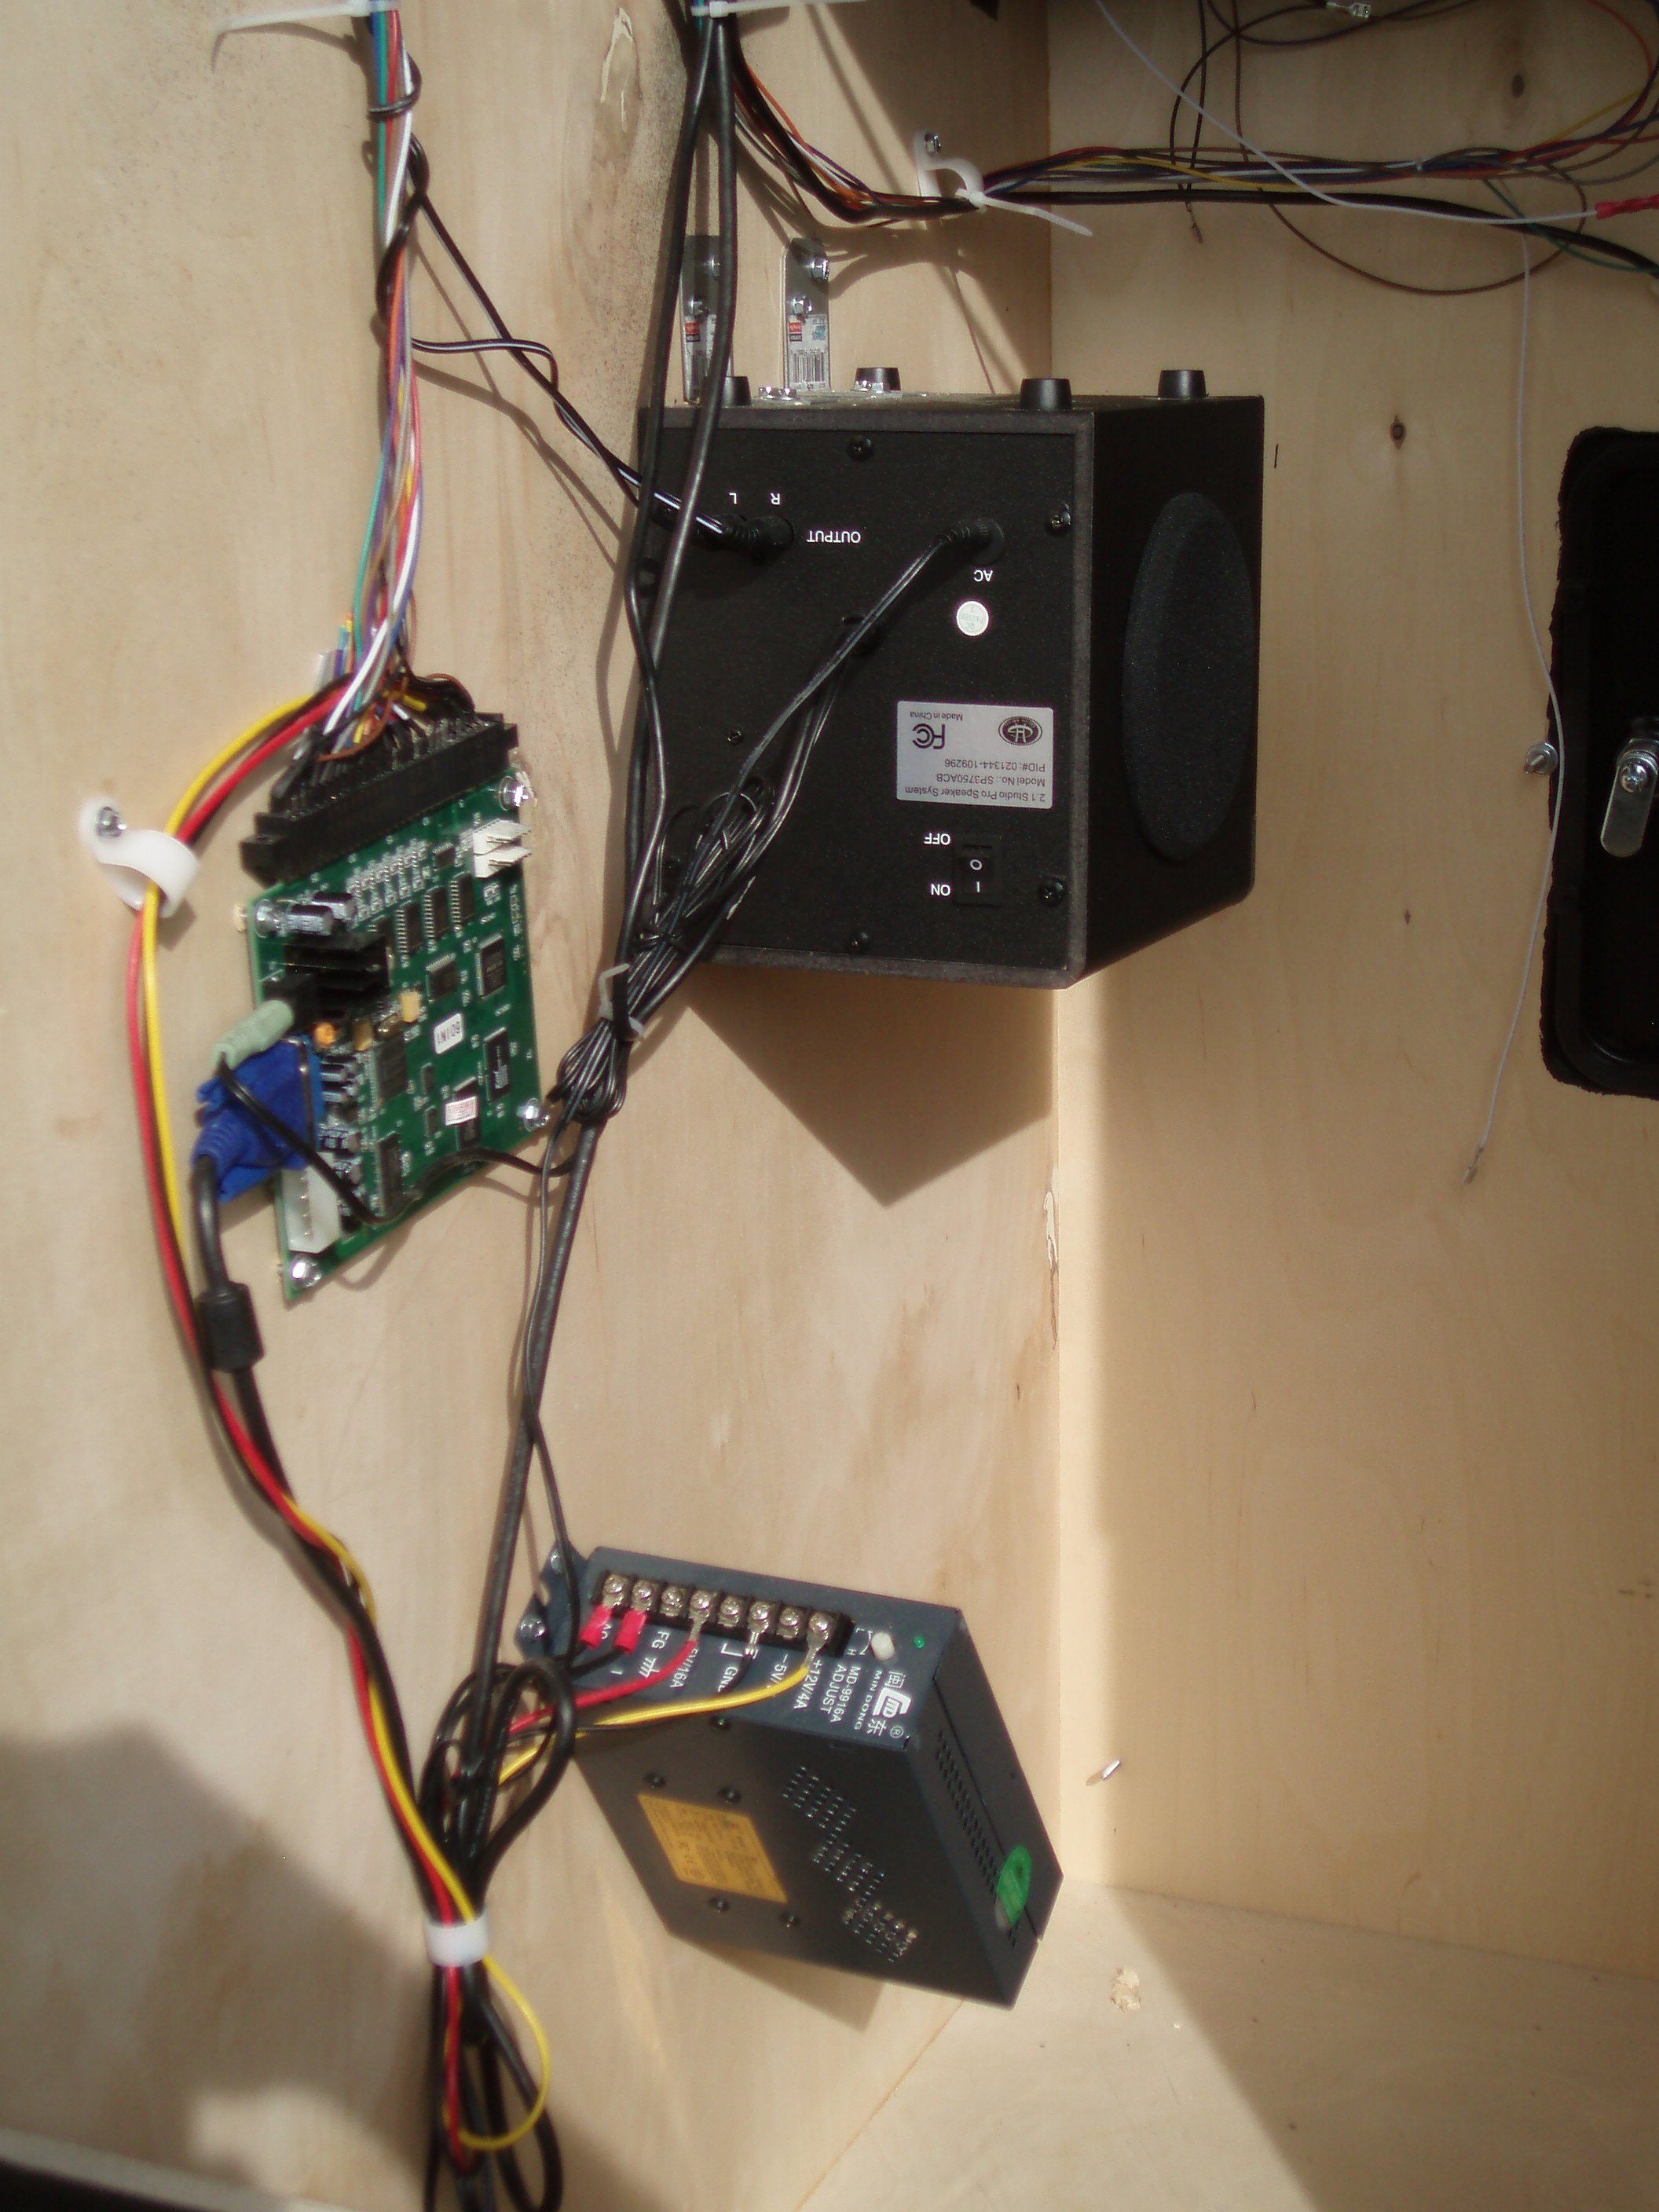 16 Amp Arcade Switching Power Supply With Terminals Hardware And 5 Jamma Board Wiring Diagram Installation To